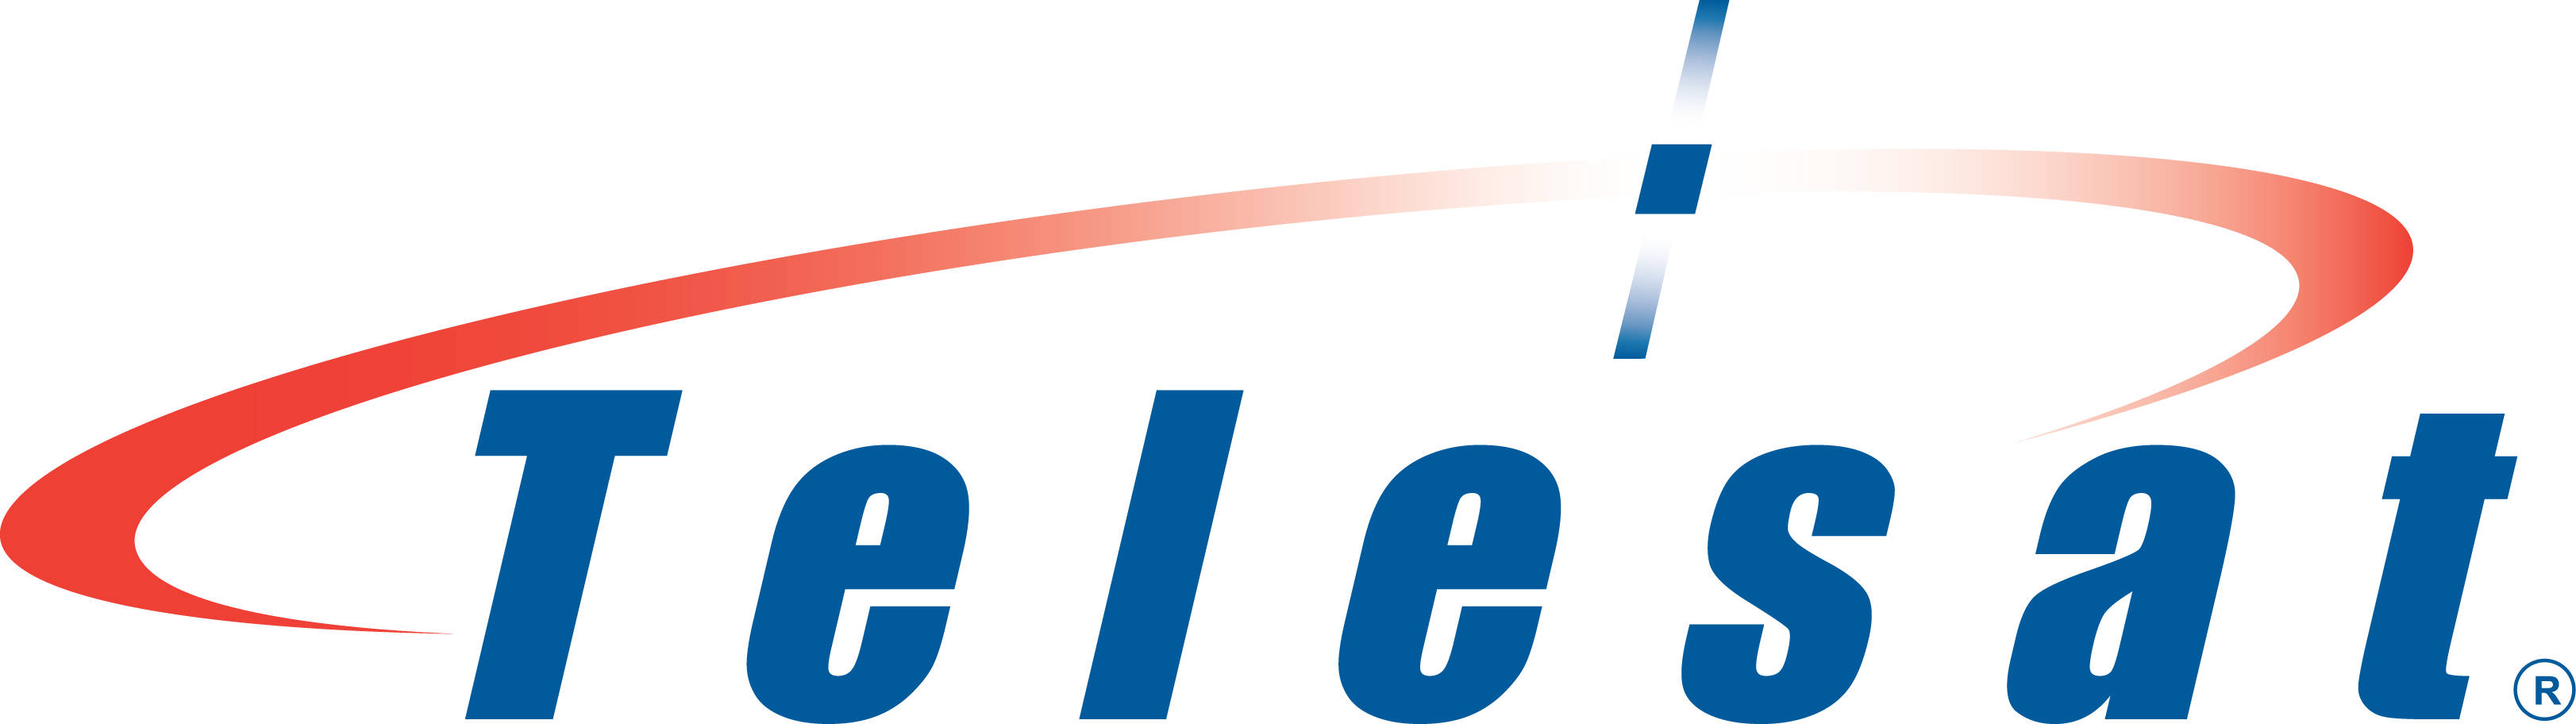 Telesat Canada Announces Closing of Its Secured Notes Offering and Credit Facility Refinancing Transaction